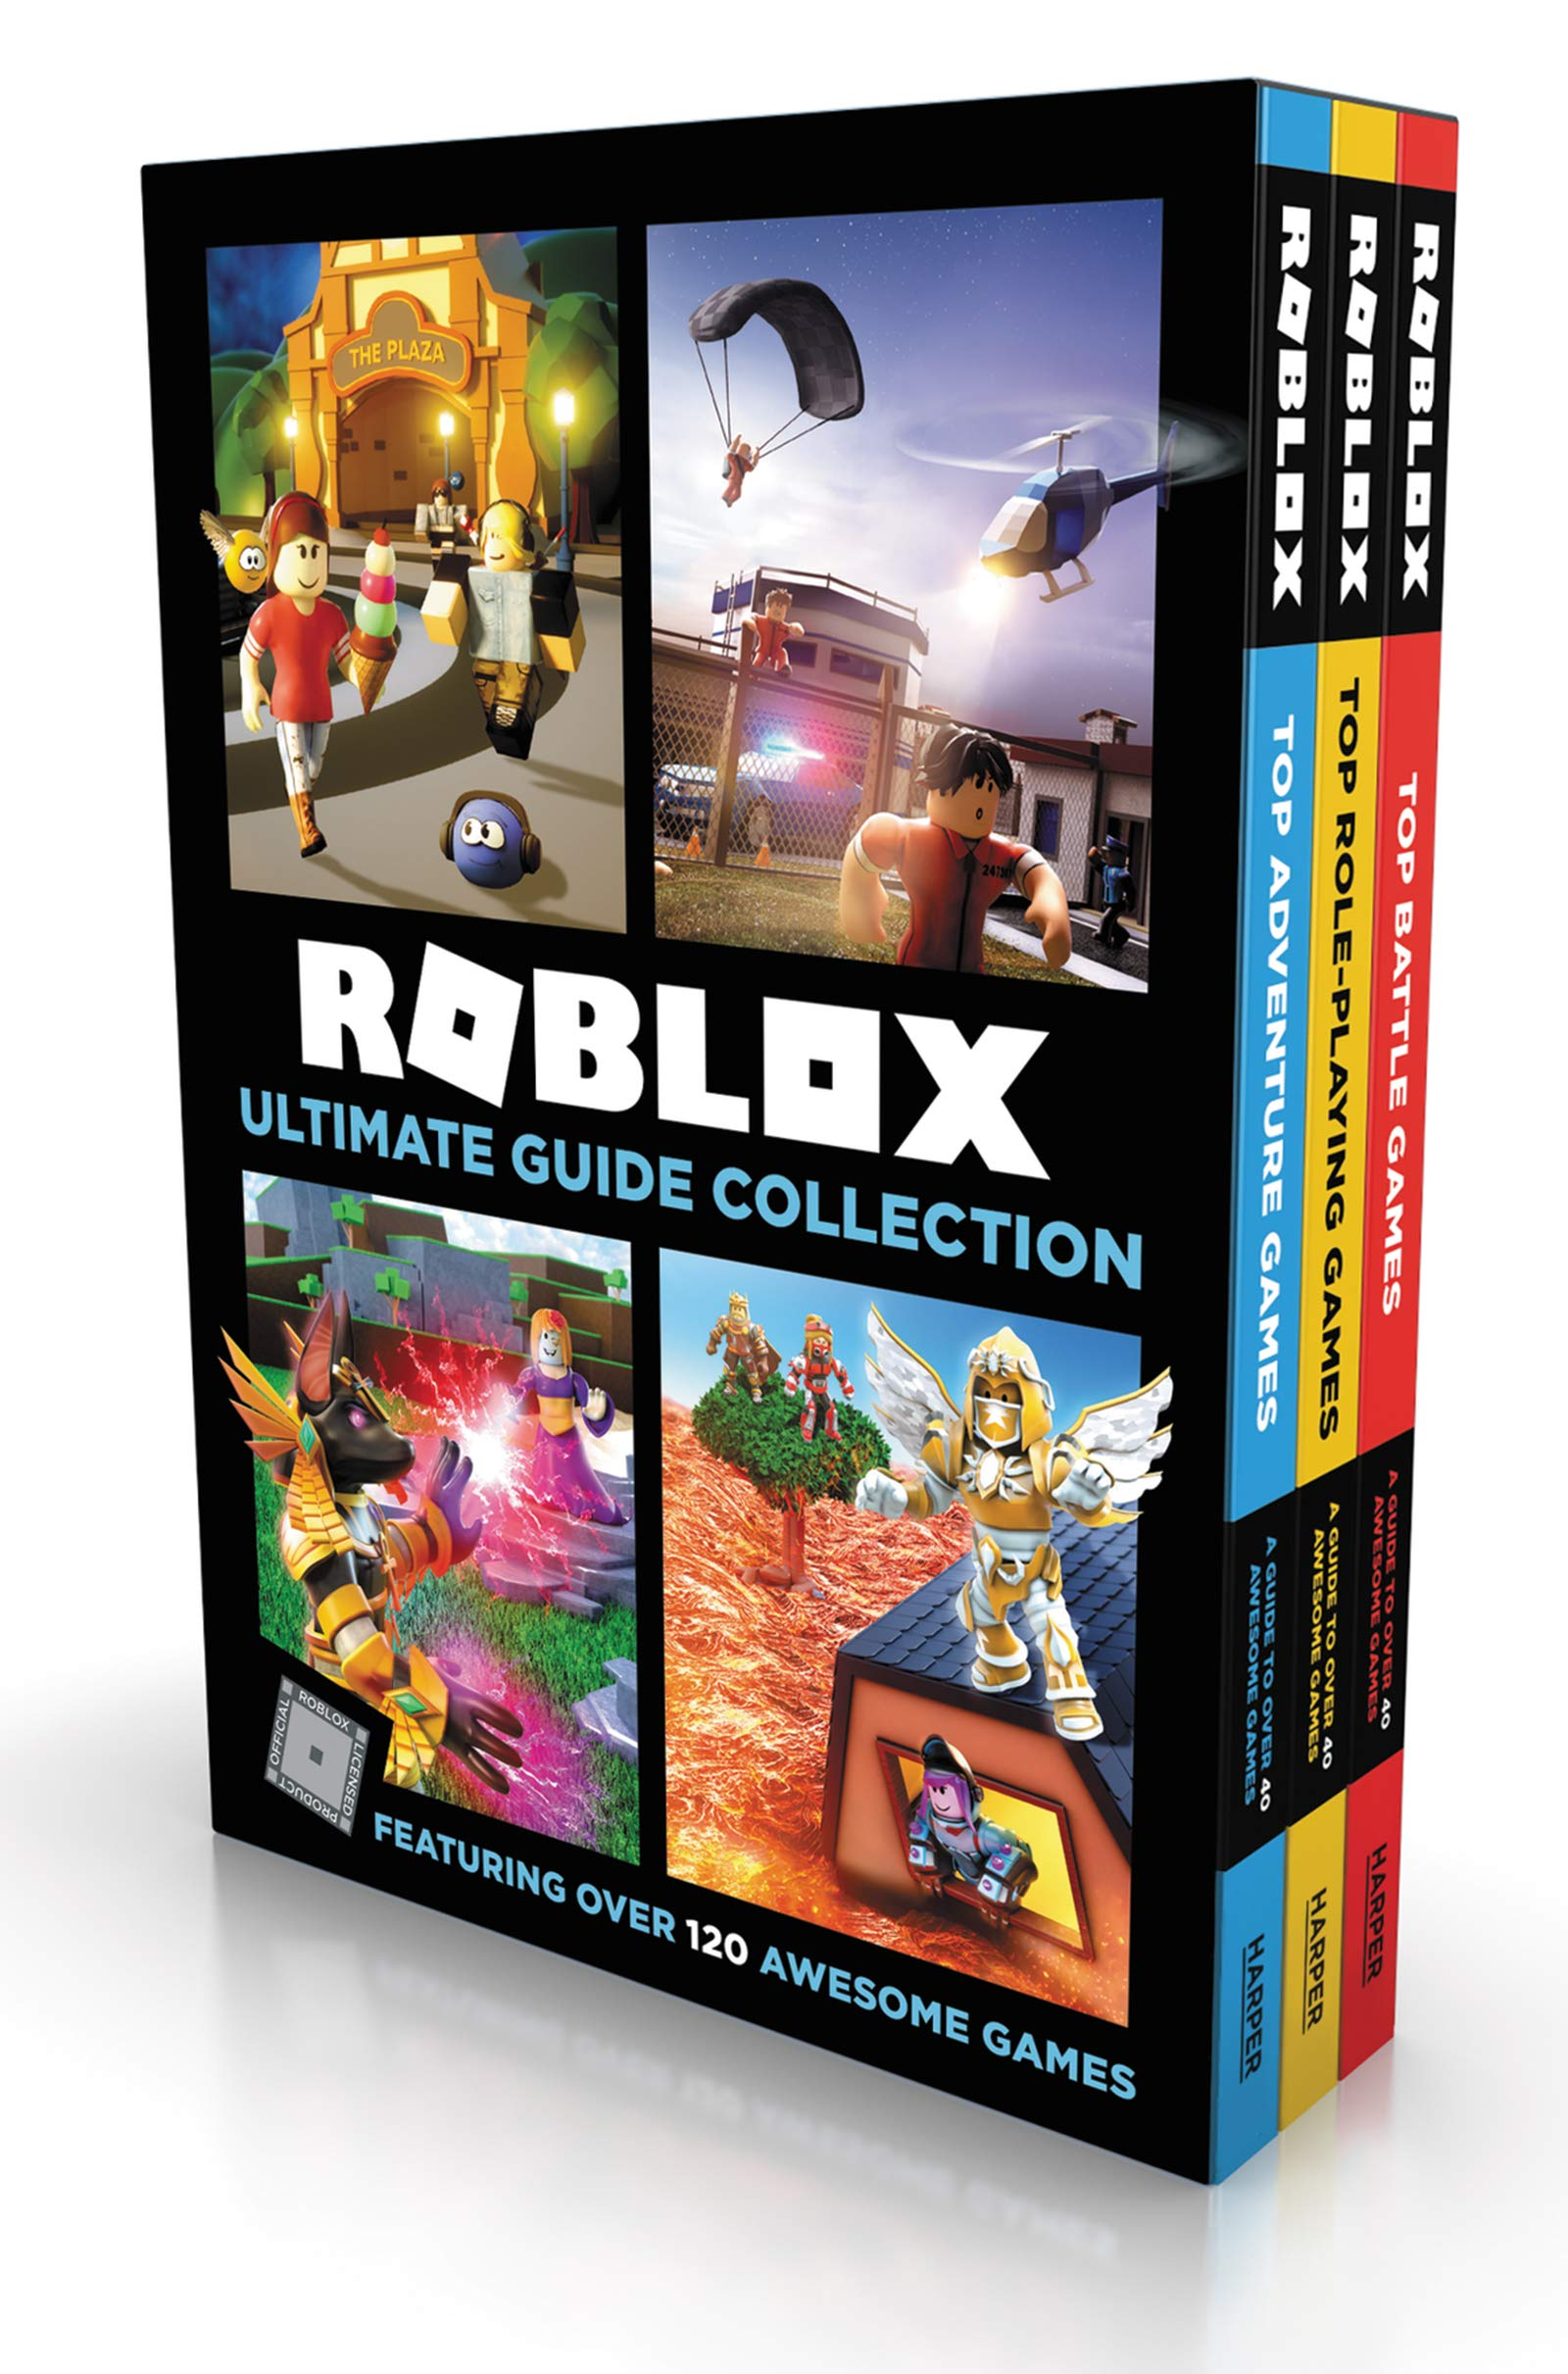 Cool Awesome Roblox Images Roblox Ultimate Guide Collection Top Adventure Games Top Role Playing Games Top Battle Games Official Roblox Books Harpercollins Official Roblox Books Harpercollins 9780063023338 Amazon Com Books